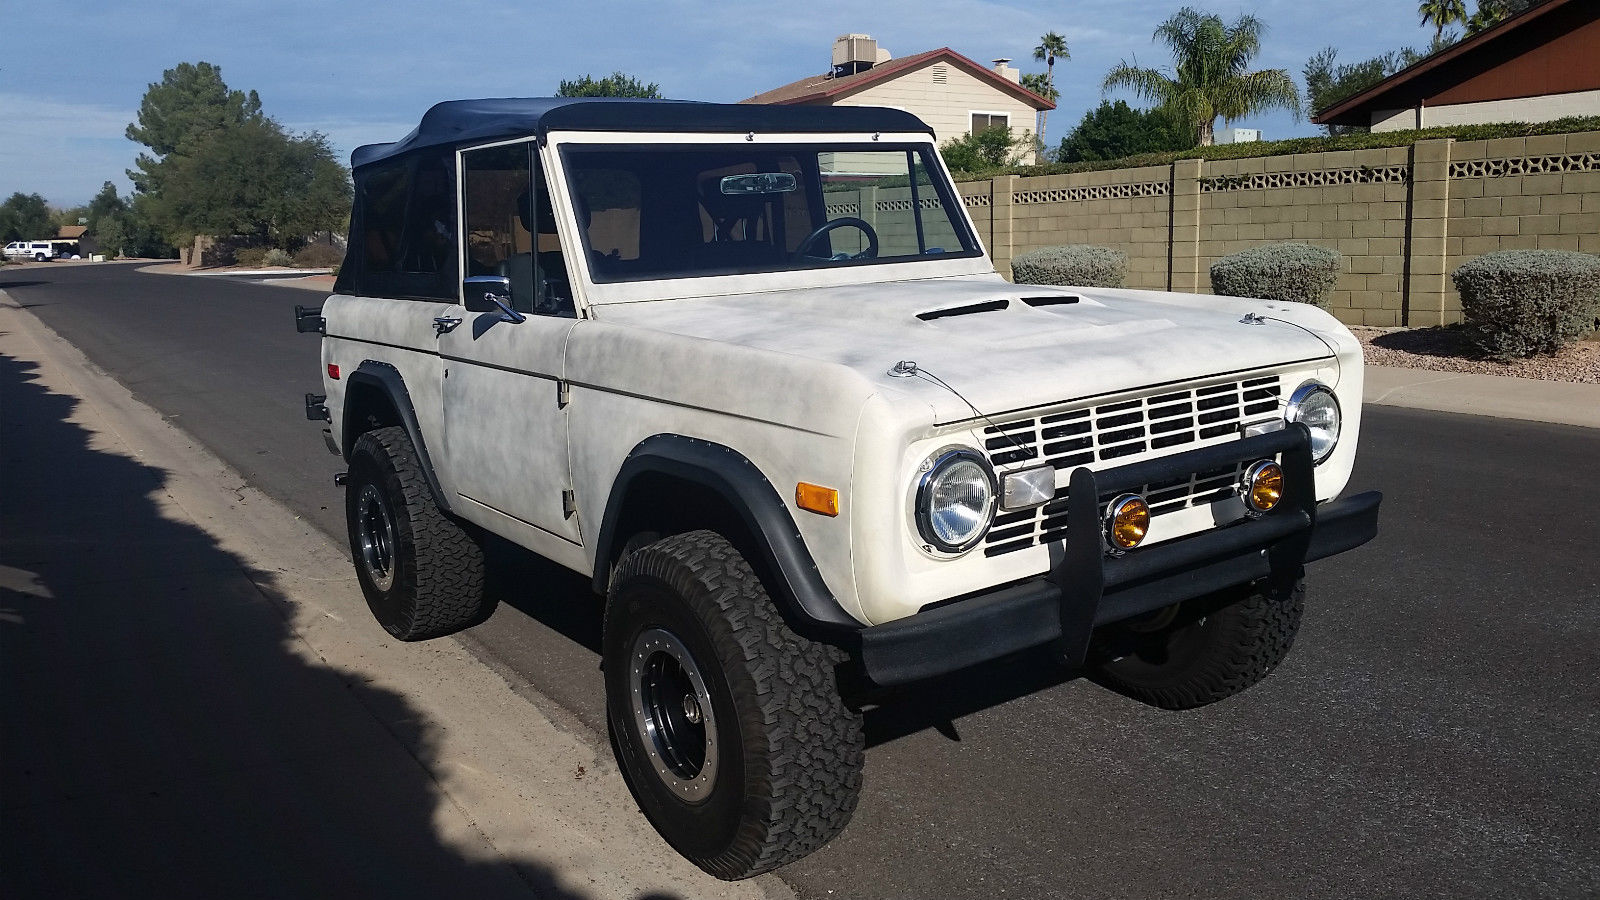 1971 71 Early Ford Bronco Frame Off Restoration Custom Hot Rod V8 3 1970 Lifted